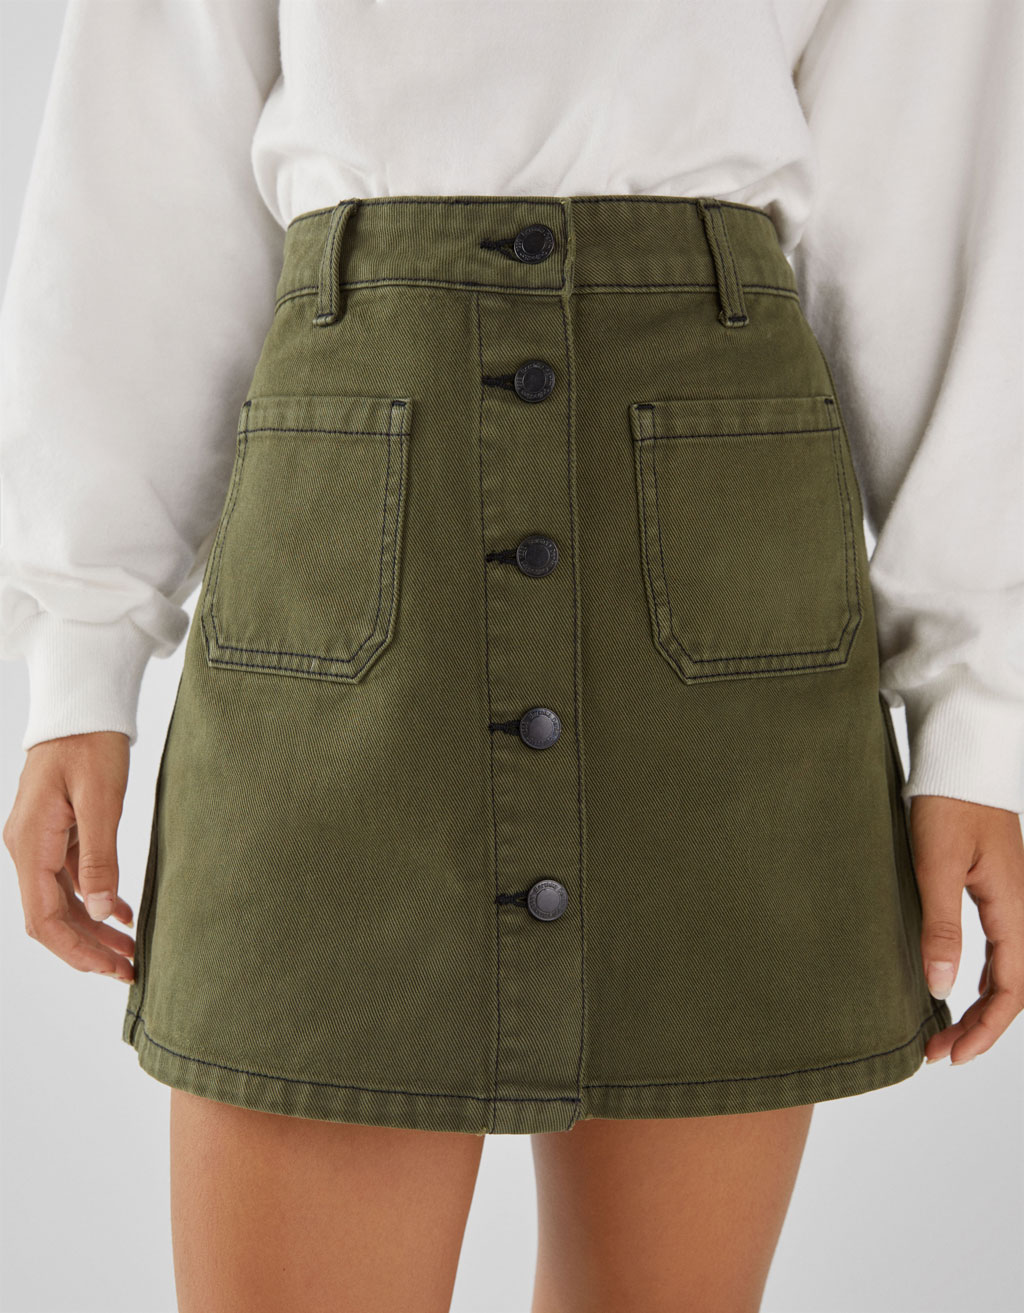 ce7853164ed52a Denim skirt with pockets - Denim - Bershka Lebanon